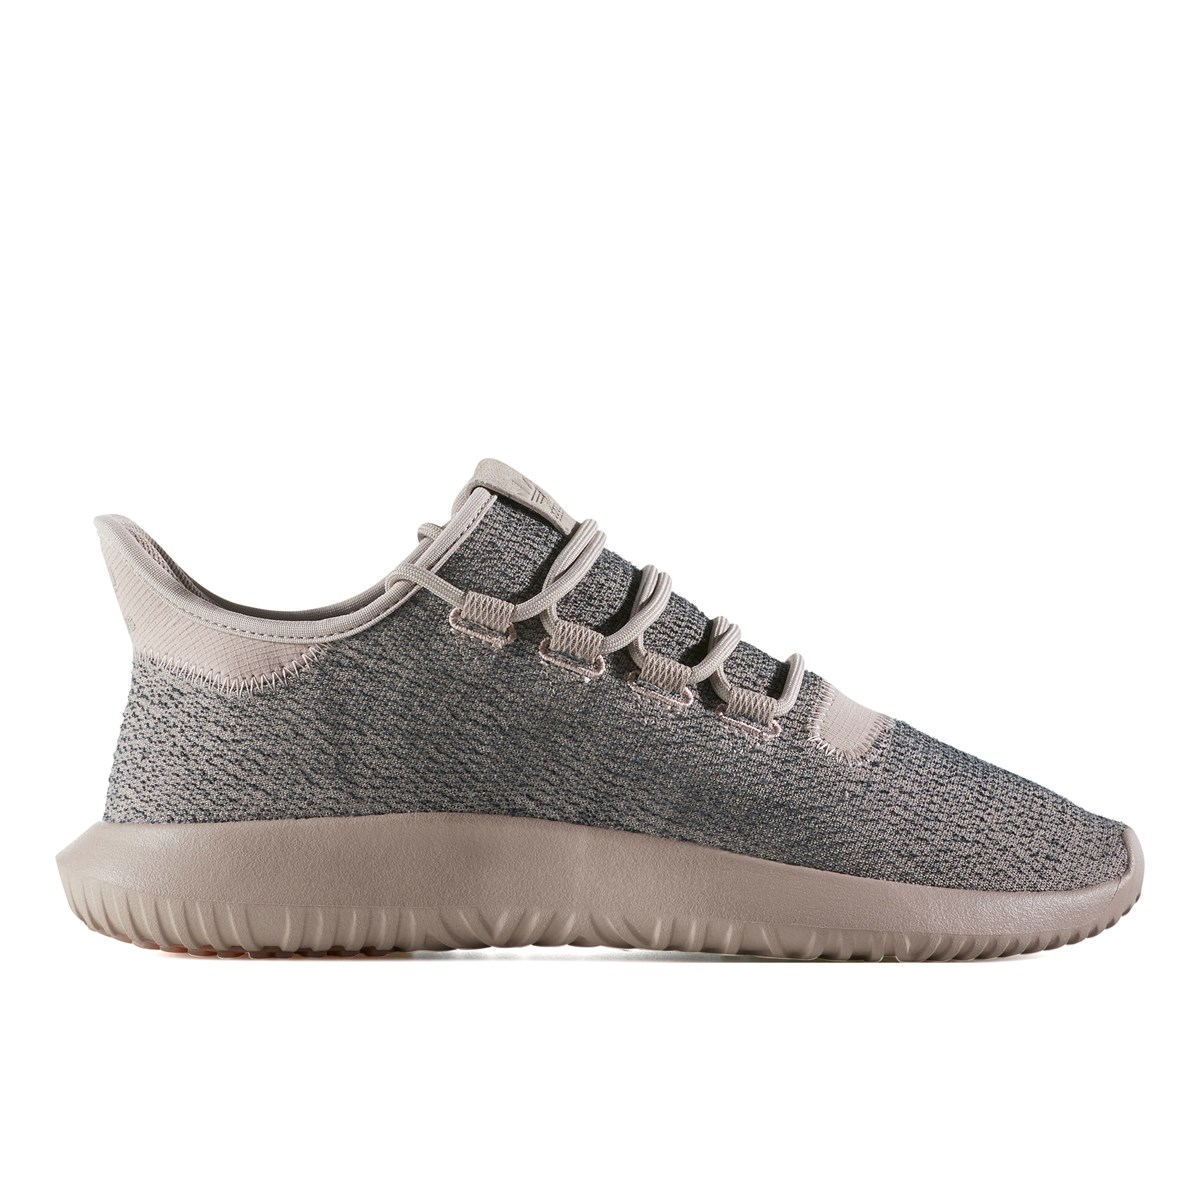 new concept 62a80 ebf29 Men's Tubular Shadow Vapor Grey Sneaker